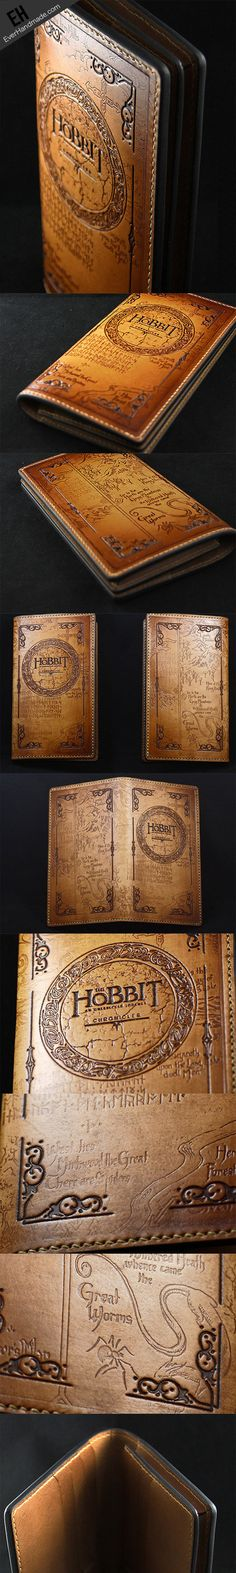 #Hobbits #hobbit Handmade carved hobbits hobbit Men leather long wallet,So stunning!!!!!!!!!!!!!!!!!!!!!!!!!! I NEED THIS. NEED NEED NEED NEED NEED.